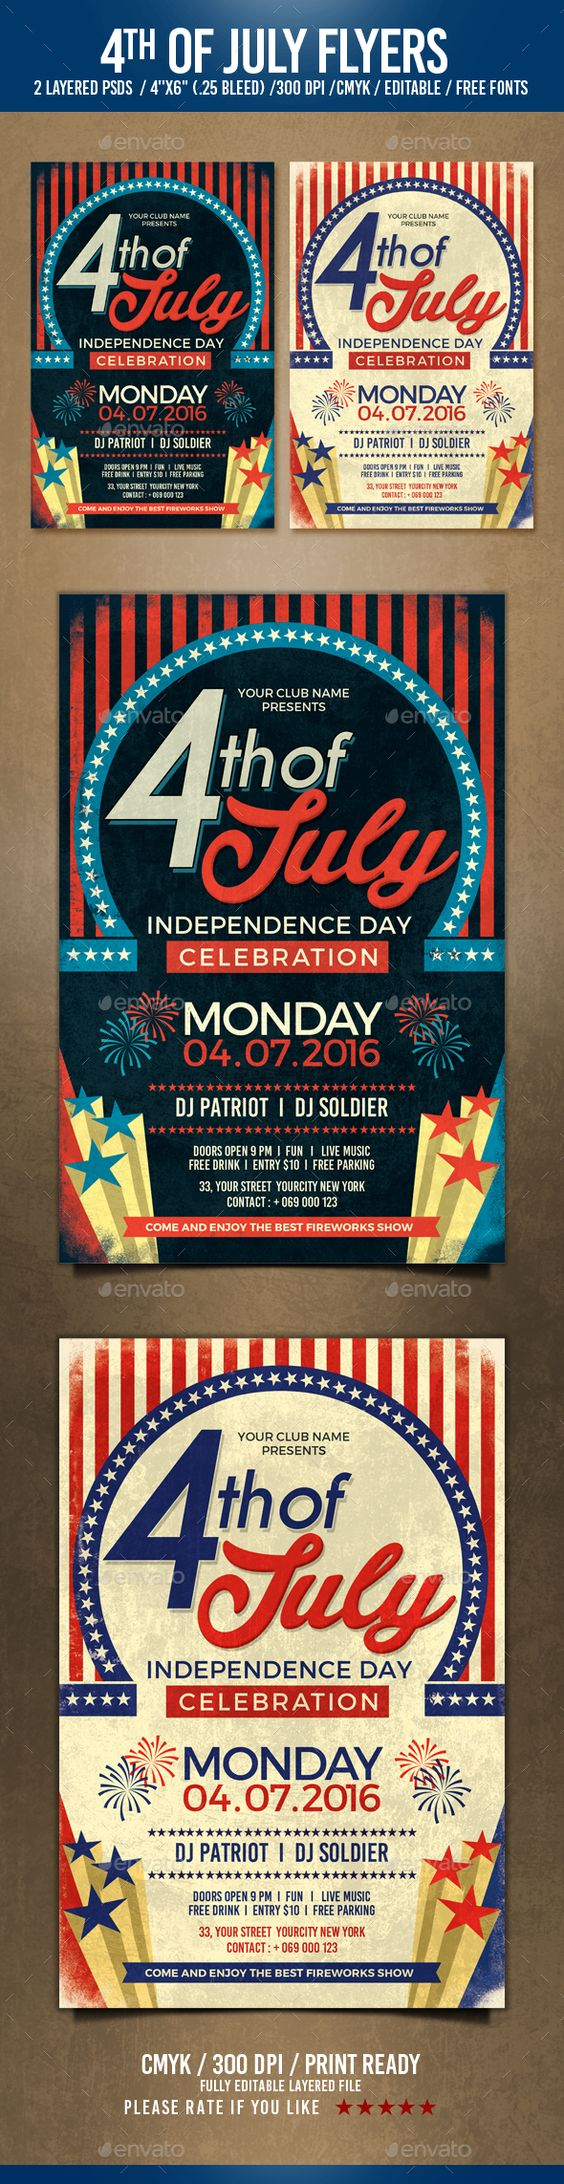 july 4th festivities orlando